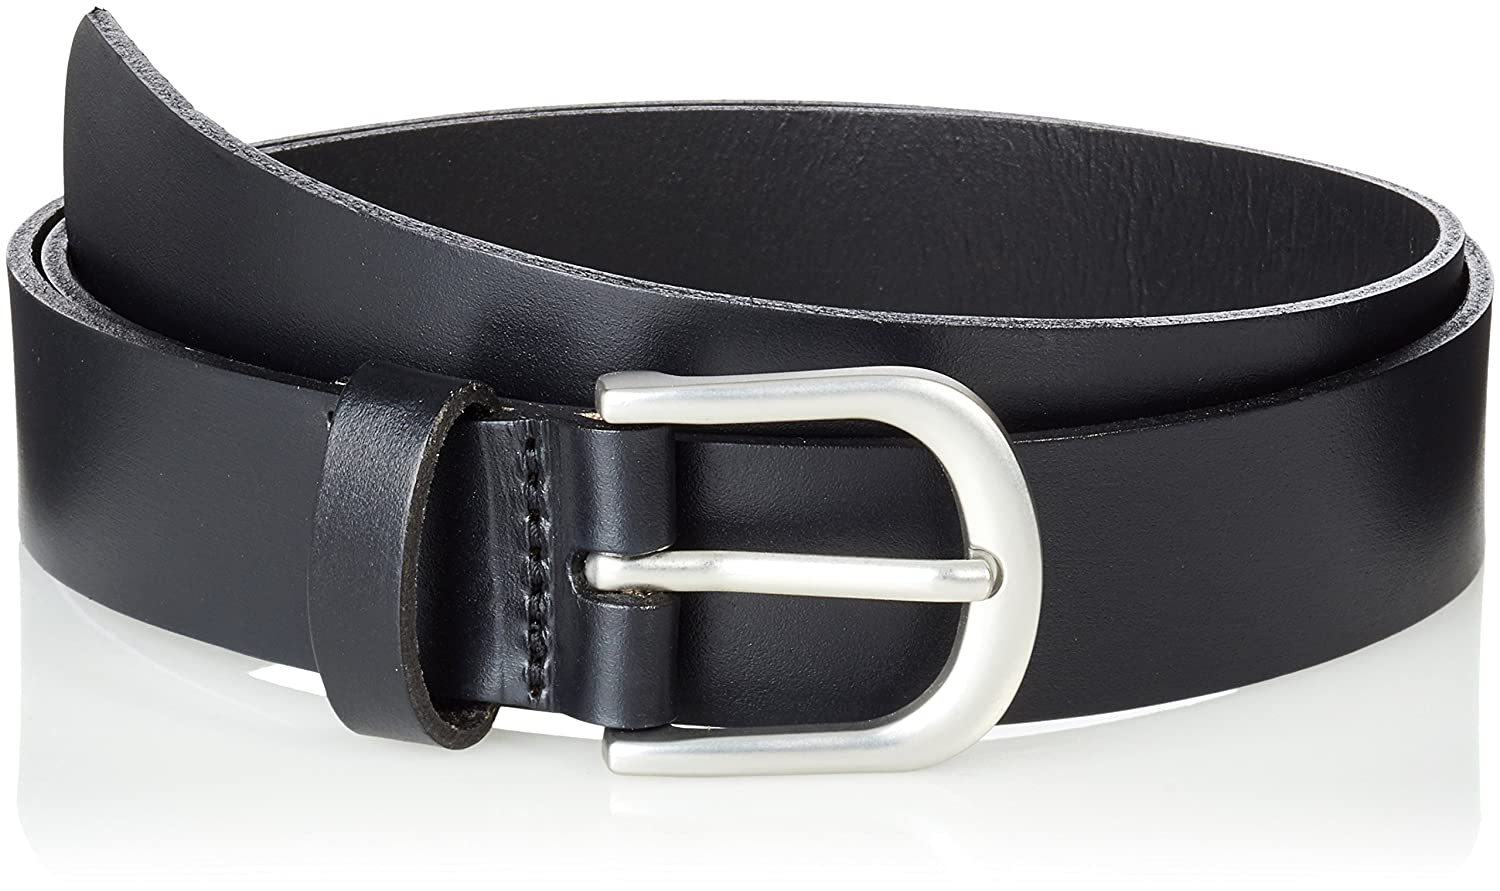 PIECES Pcfunda Leather Jeans Belt Noos Cinturón para Mujer